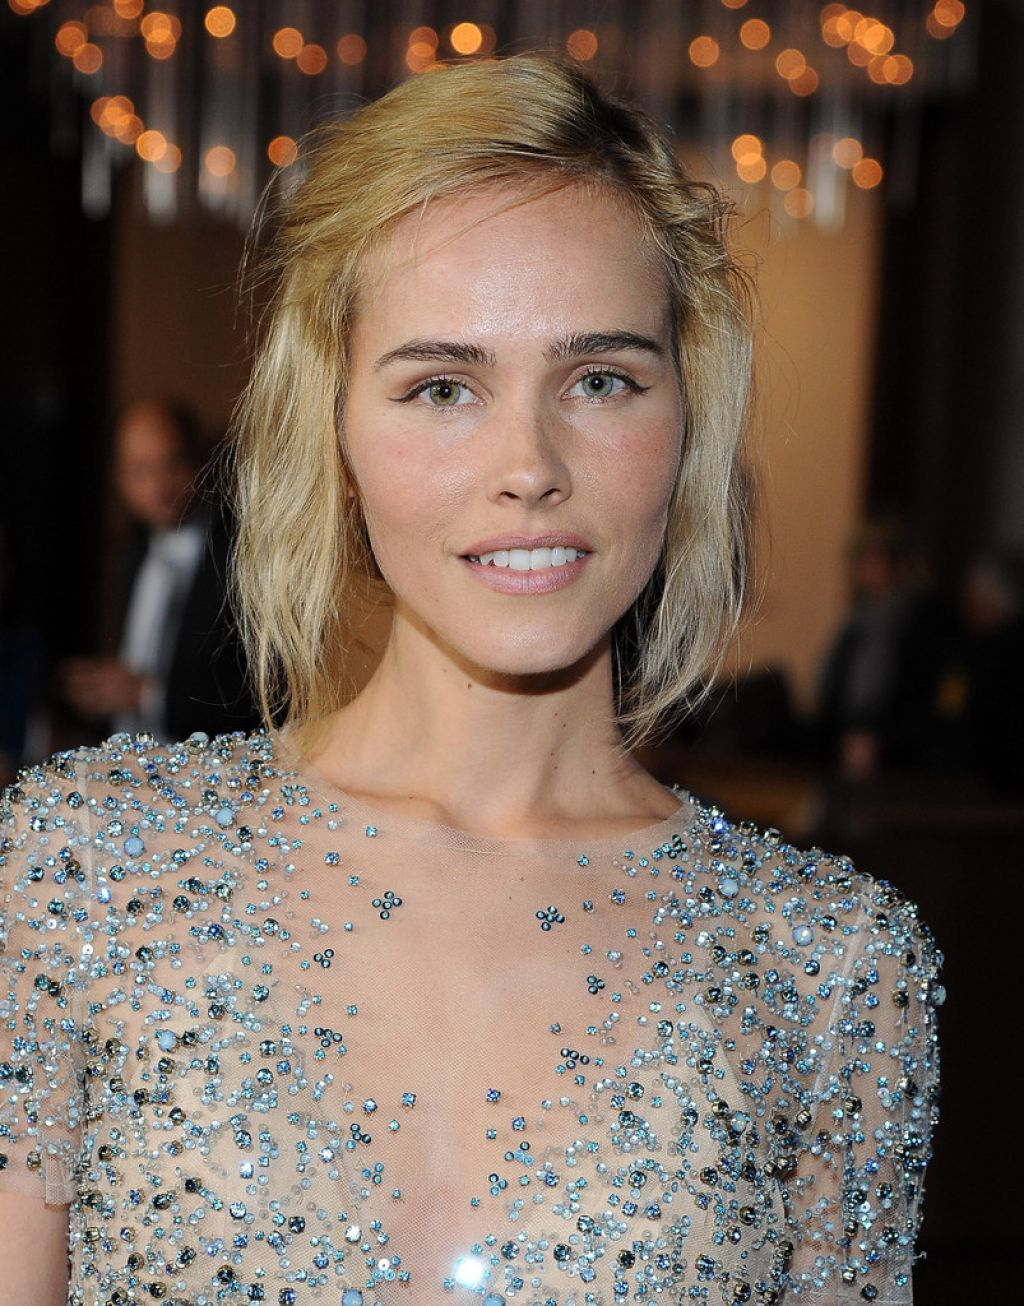 isabel lucas - photo #20